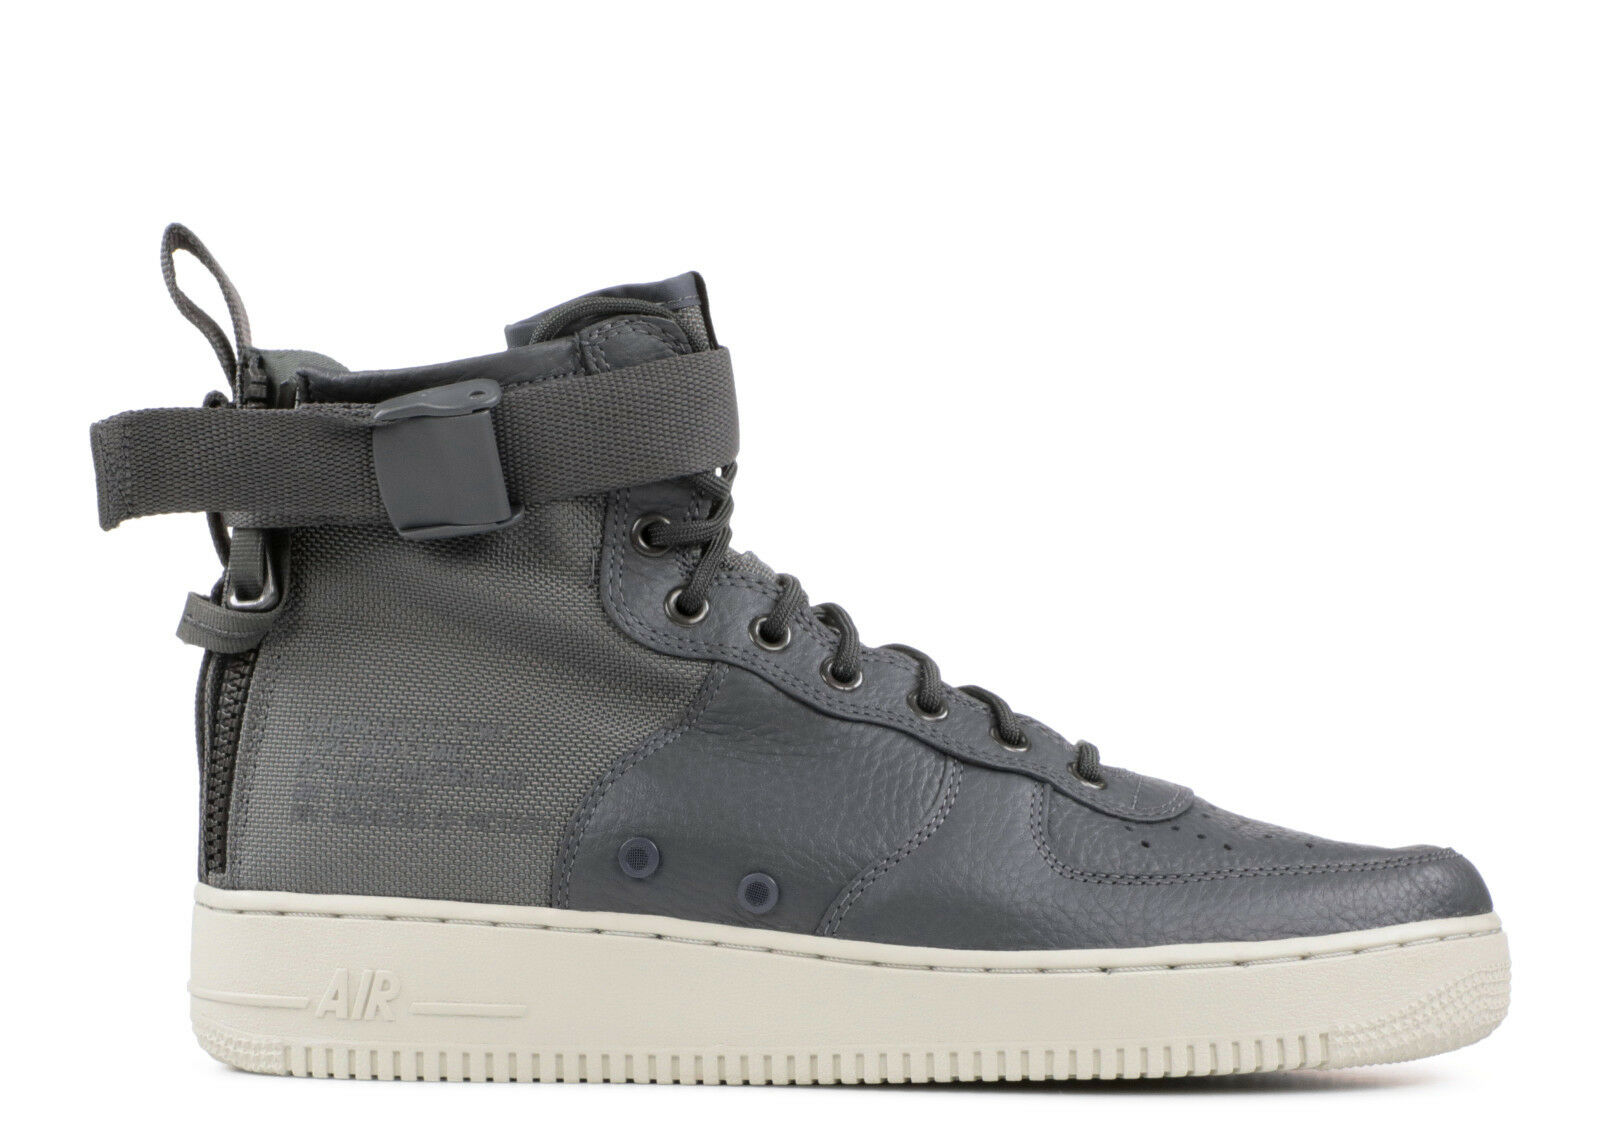 Air Nike Men's Force 004 917753 Premium Trainers Grey 8 Size